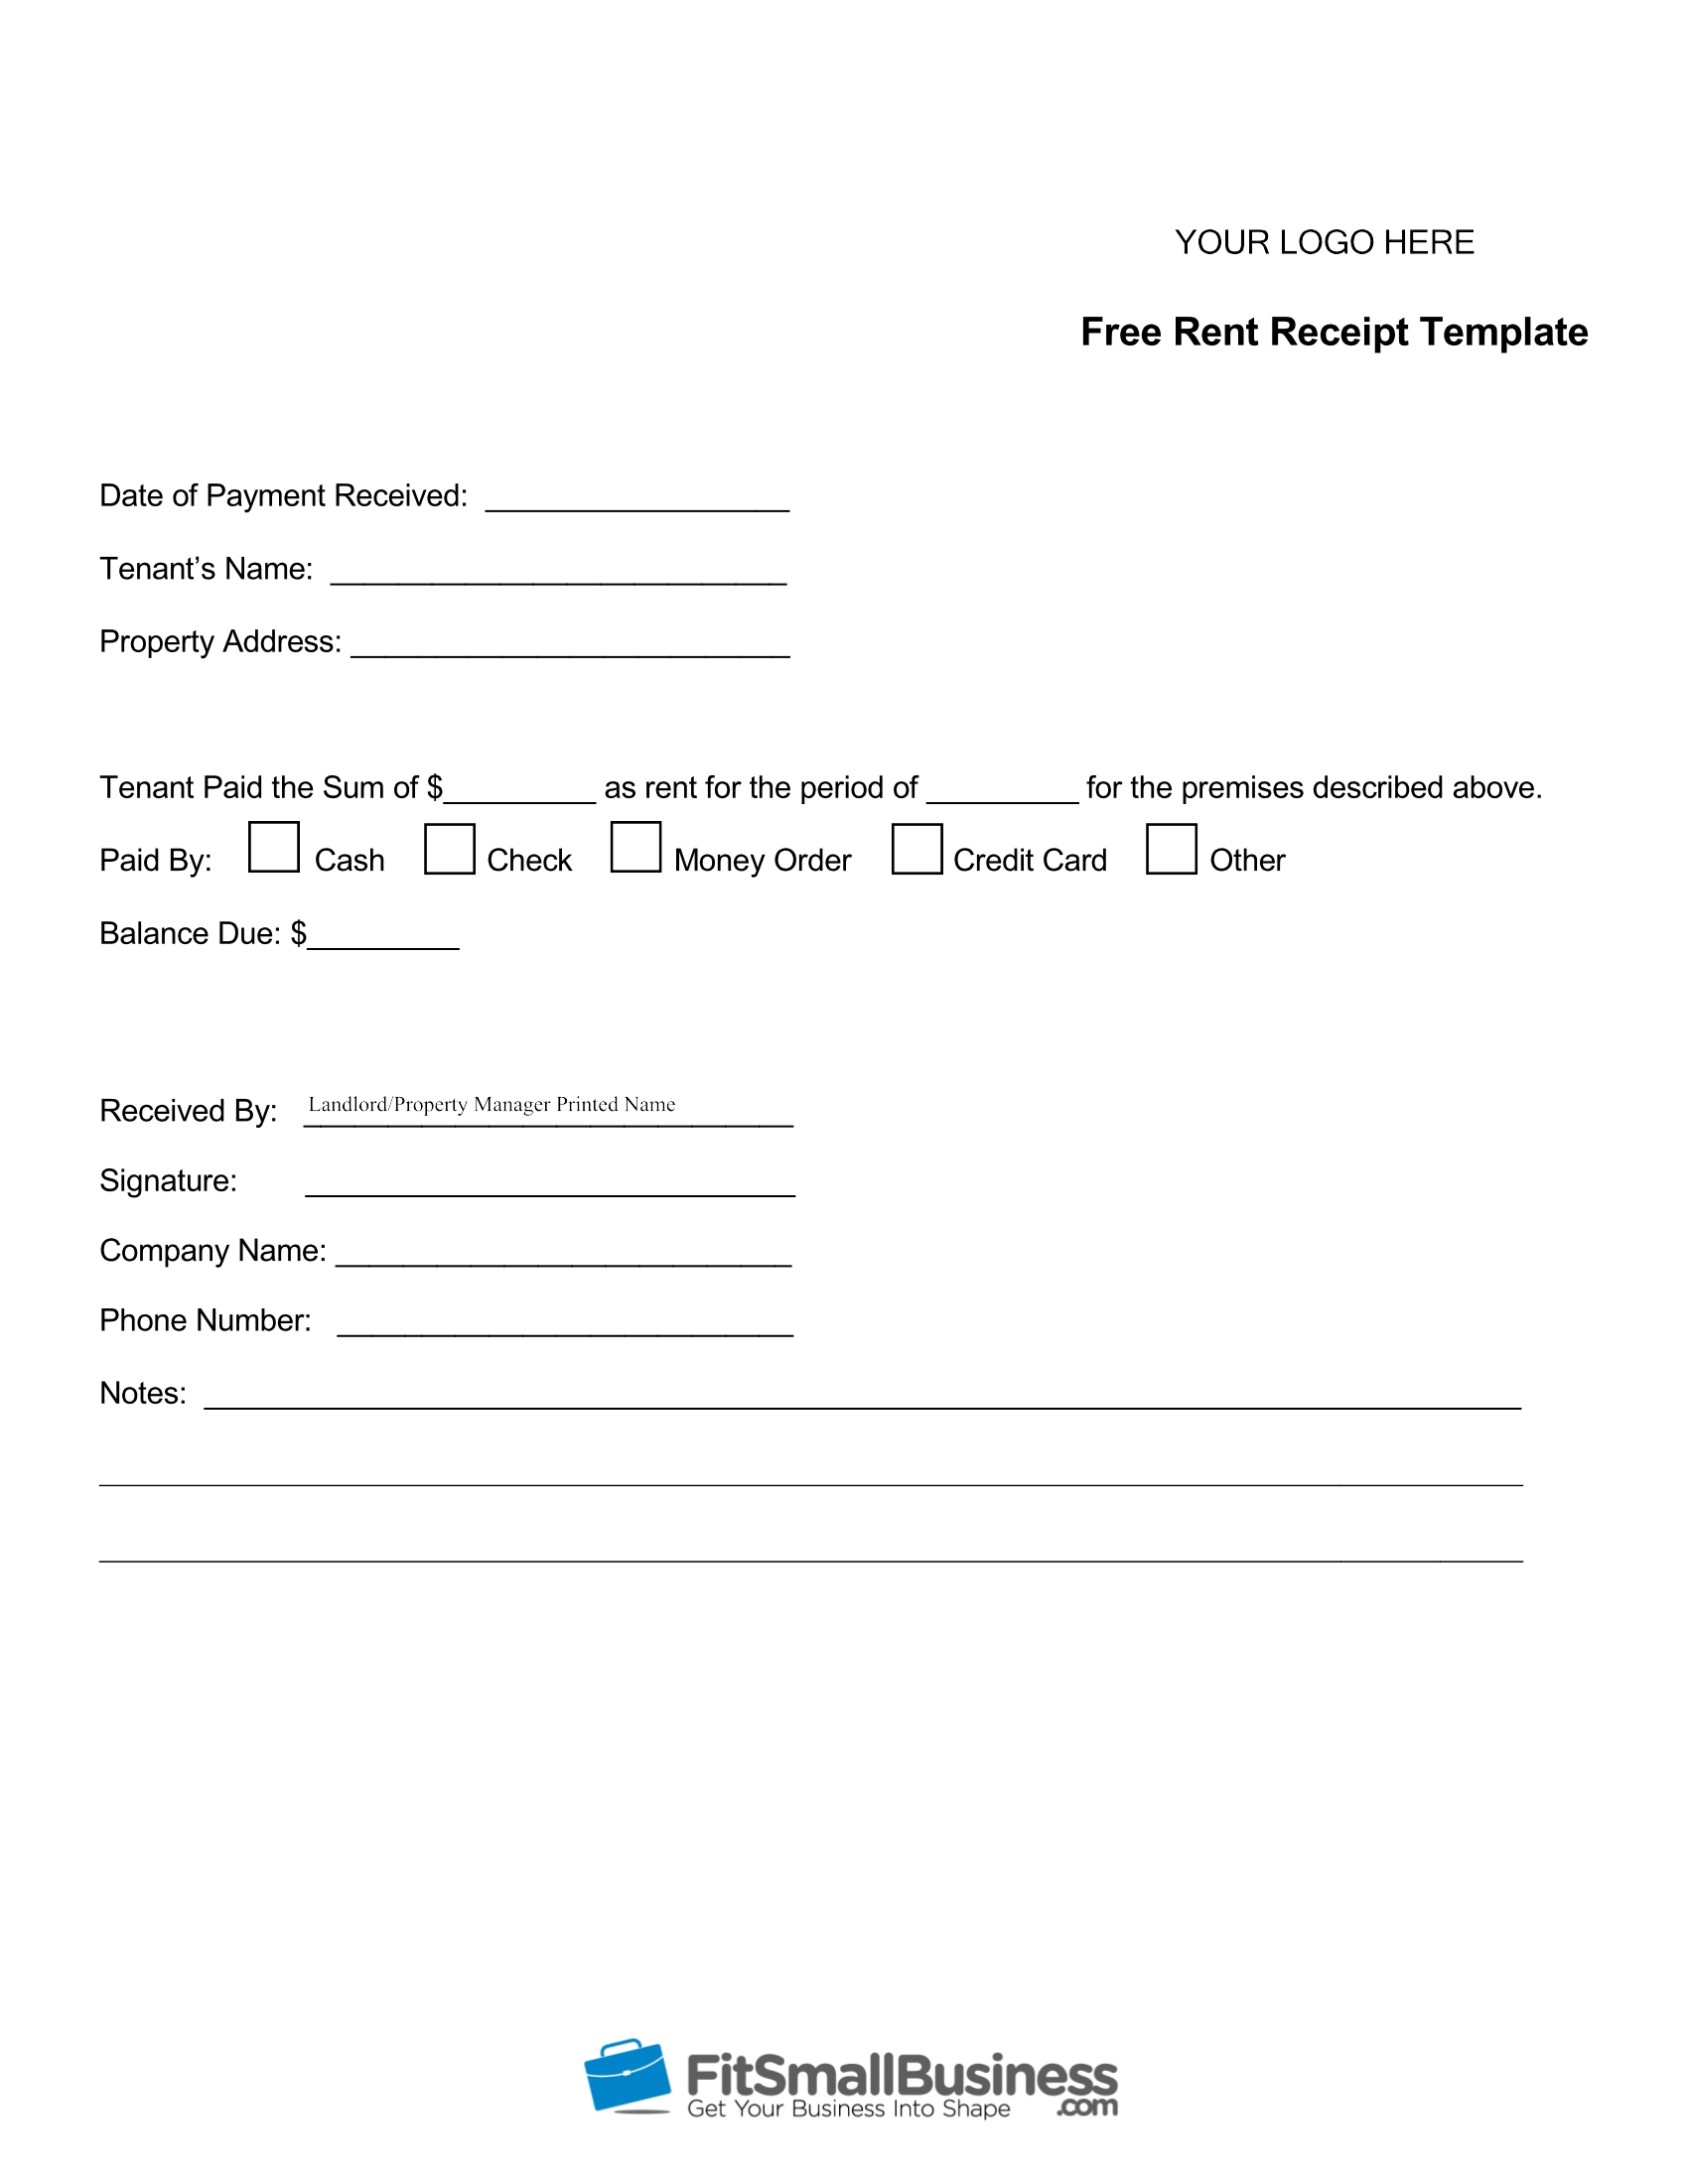 Free Printable Rent Receipt Template Download - Free Printable Rent Receipt